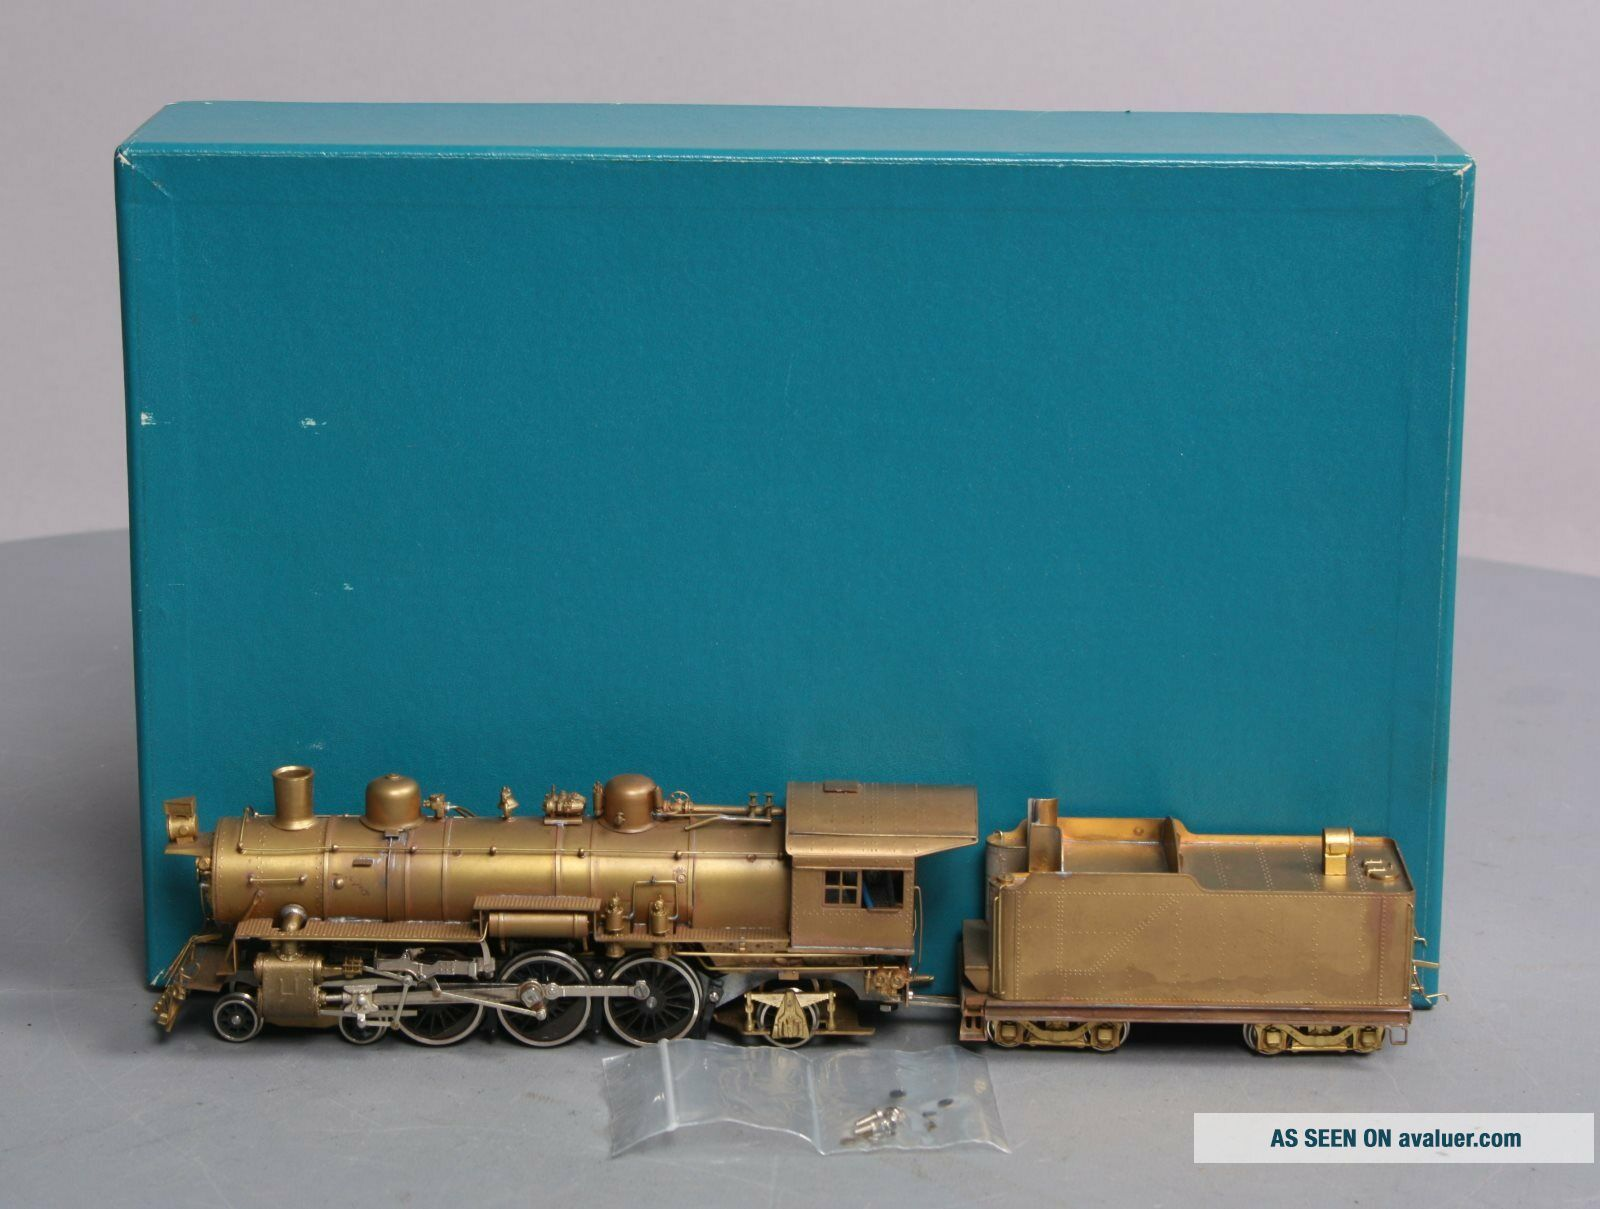 Northwest Short Line HO BRASS N&W Pacific Class E - 2a 4 - 6 - 2 Steam Locomotive & Te